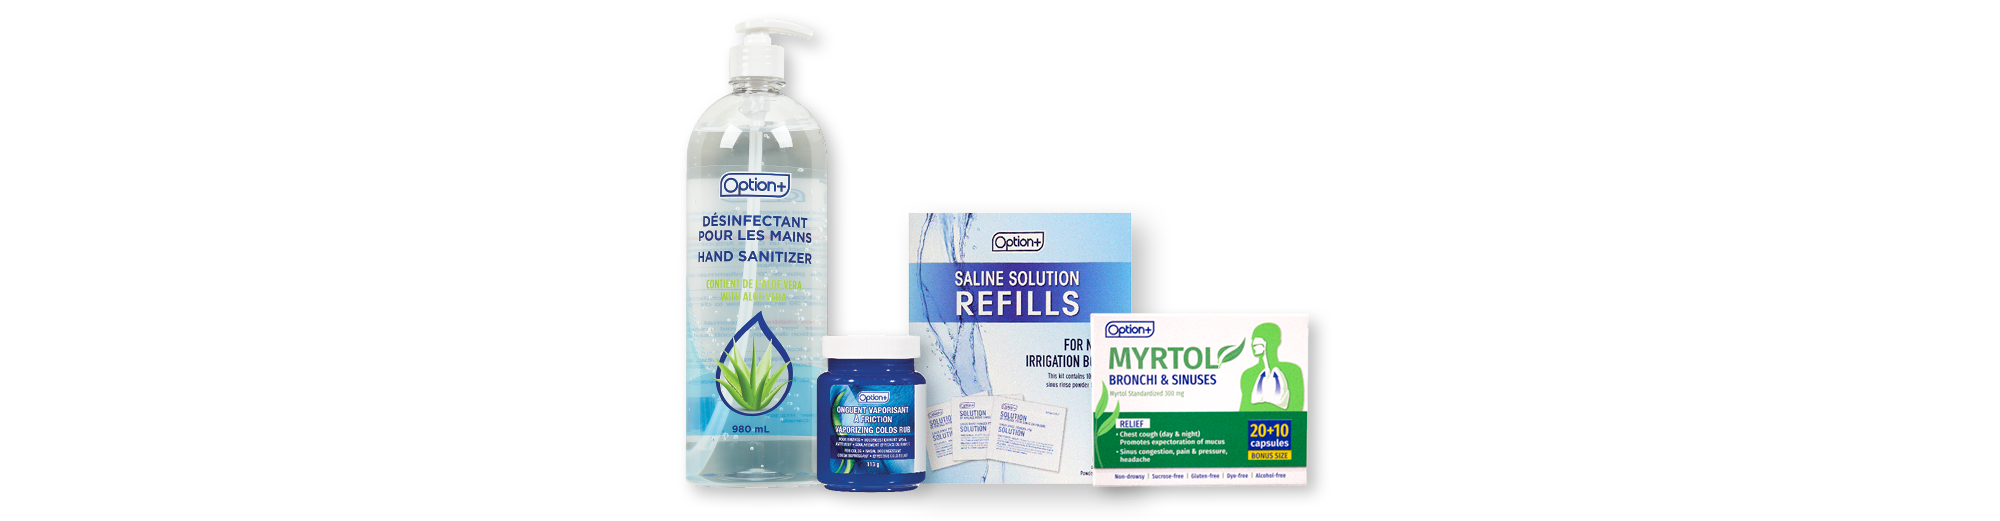 Option+ Cold, Flu, and Allergy Symptom Relief Products